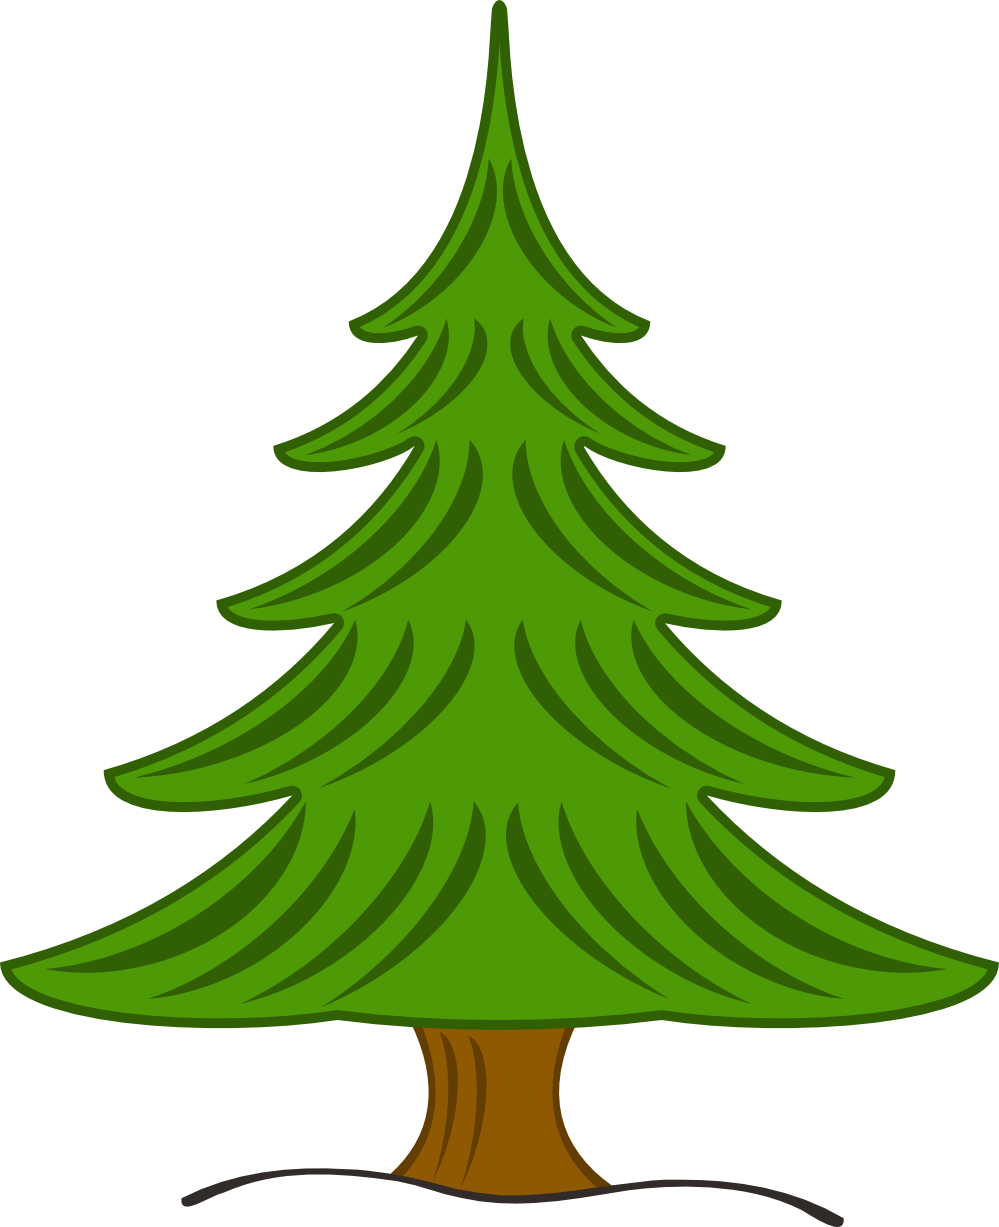 Christmas Tree Clipart Free : christmas, clipart, Xmas_christmas_tree_22-999px.png, 999×1,227, Pixels, Christmas, Clipart,